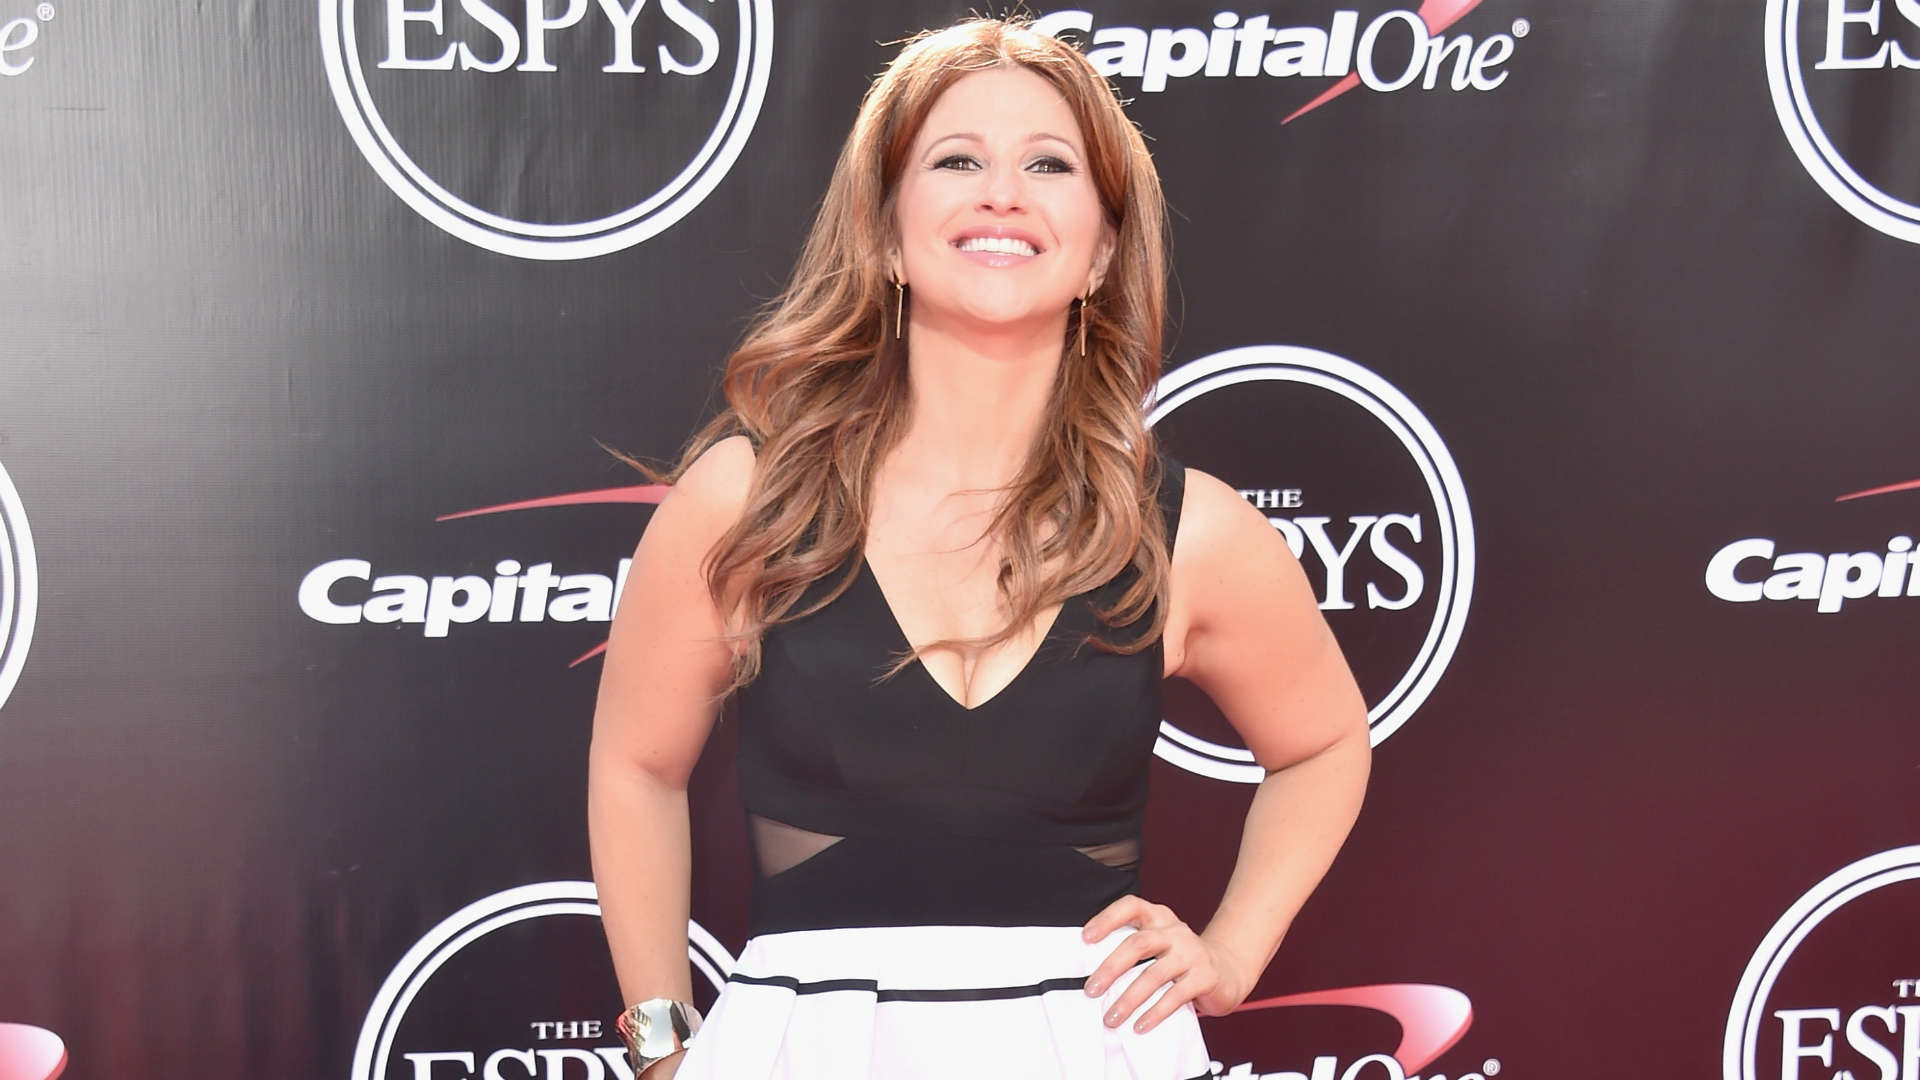 Espn S Rachel Nichols Takes Issue With Charles Barkley Sporting News